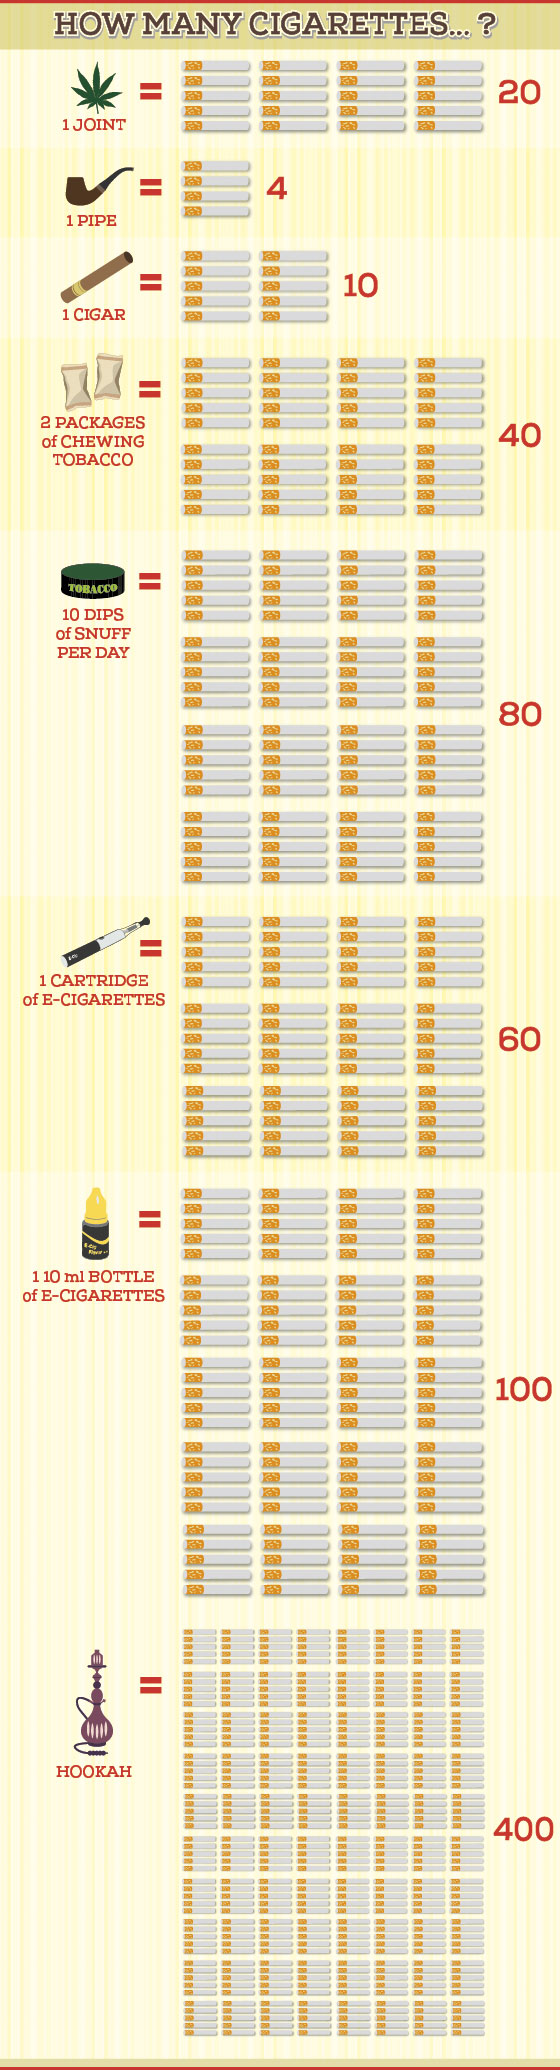 How Many Cigarettes Infographic